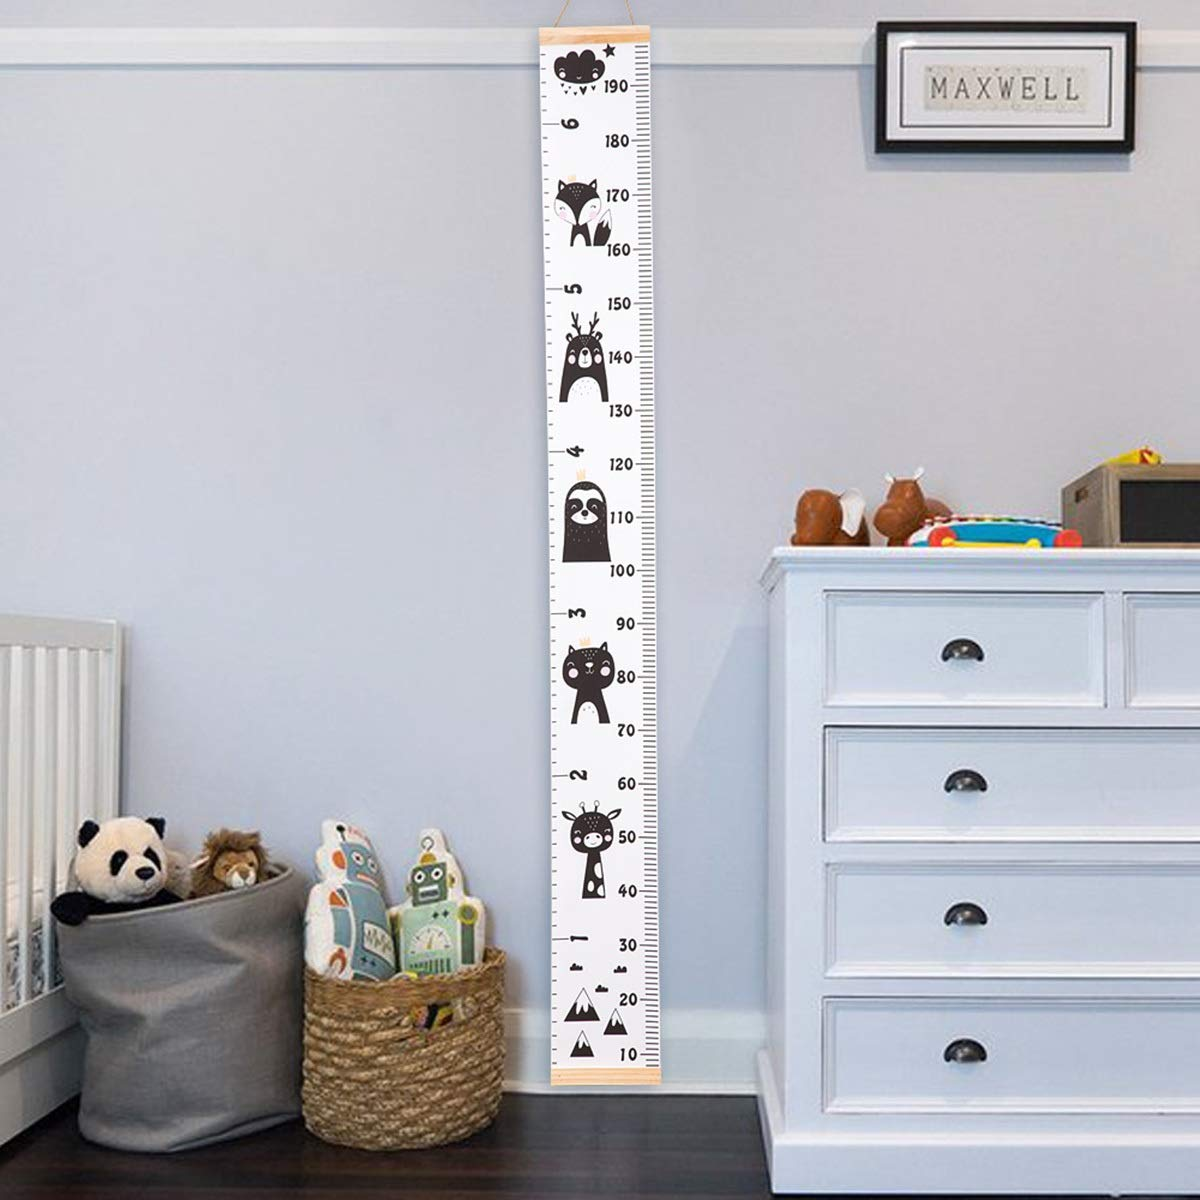 Waterproof Canvas Height Ruler Removable Handing Ruler Wall Decor Baby Growth Chart Ruler Color : A, Size : M